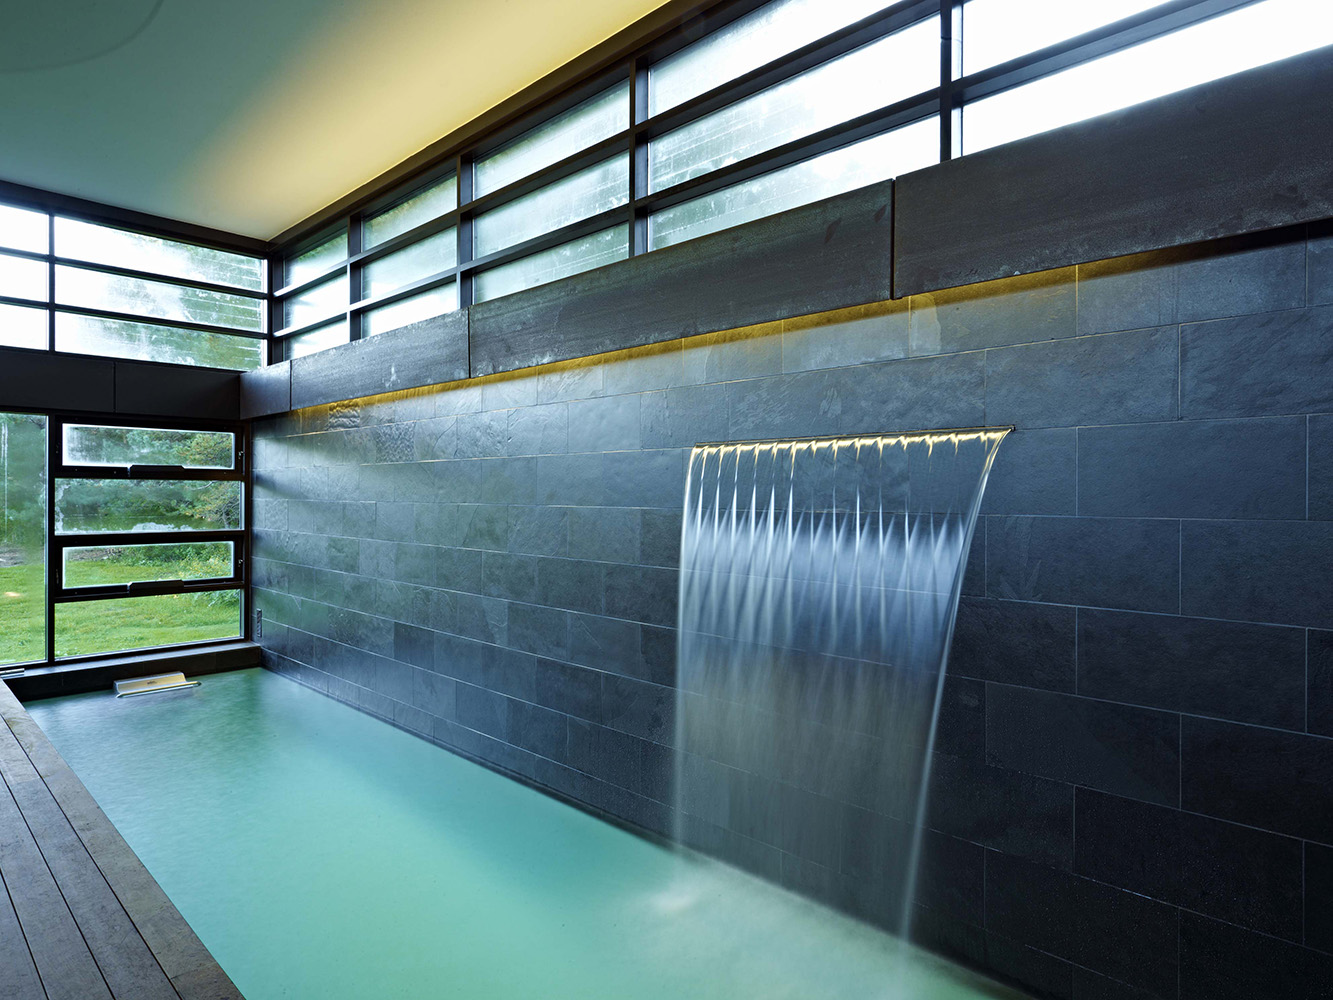 Indoor lap pool with Waterfall water circulator. Ipe pool decking and slate tile backsplash with recessed valance lighting